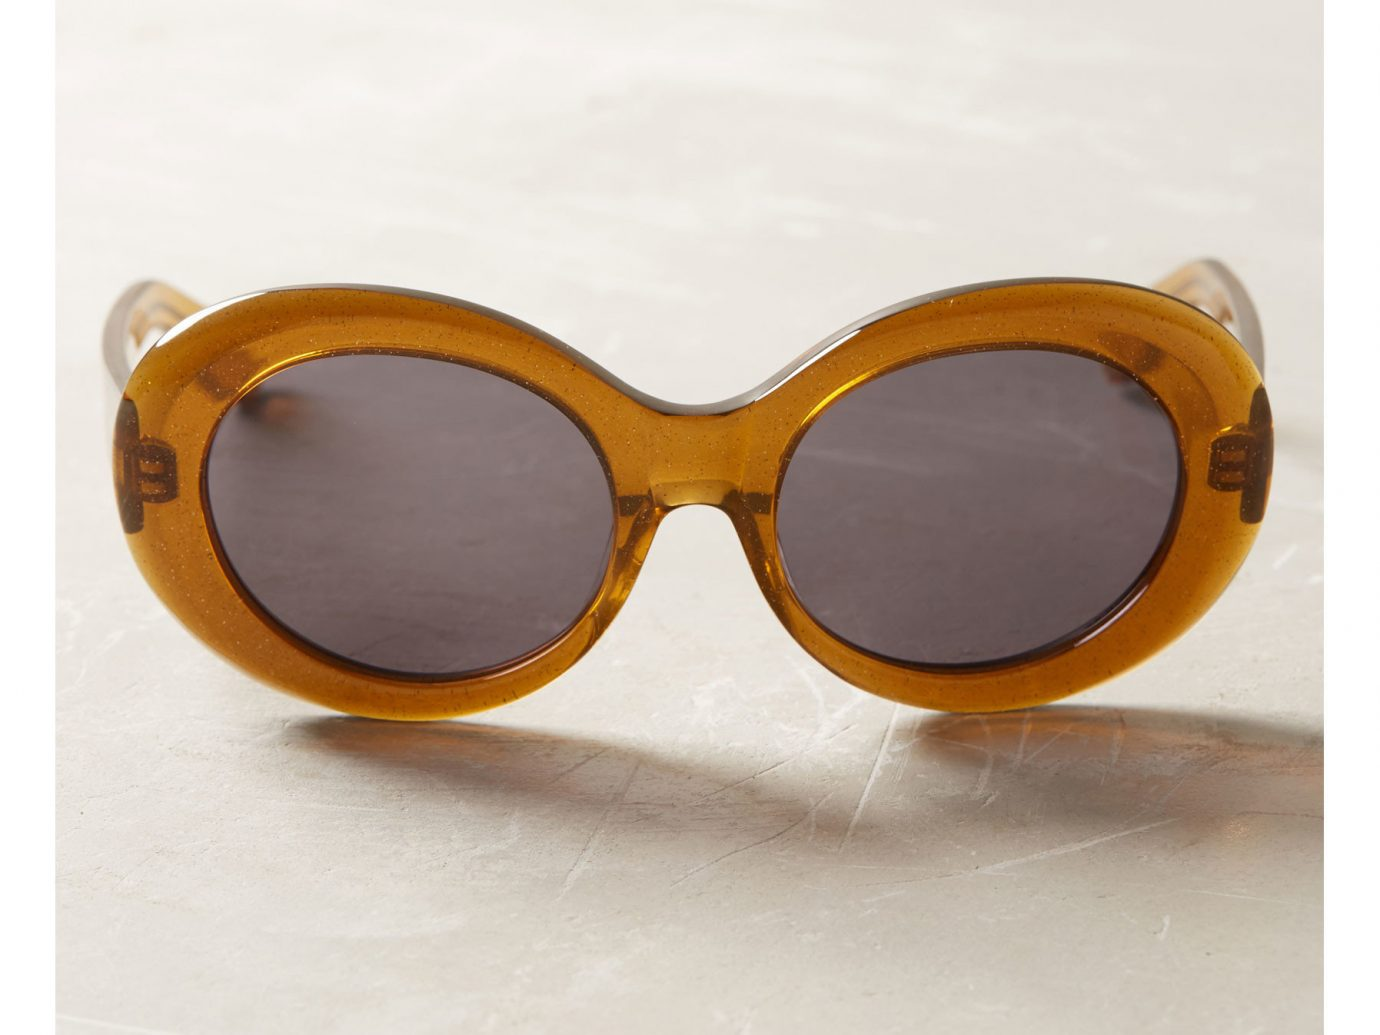 Style + Design spectacles eyewear accessory sunglasses goggles glasses brown vision care fashion accessory